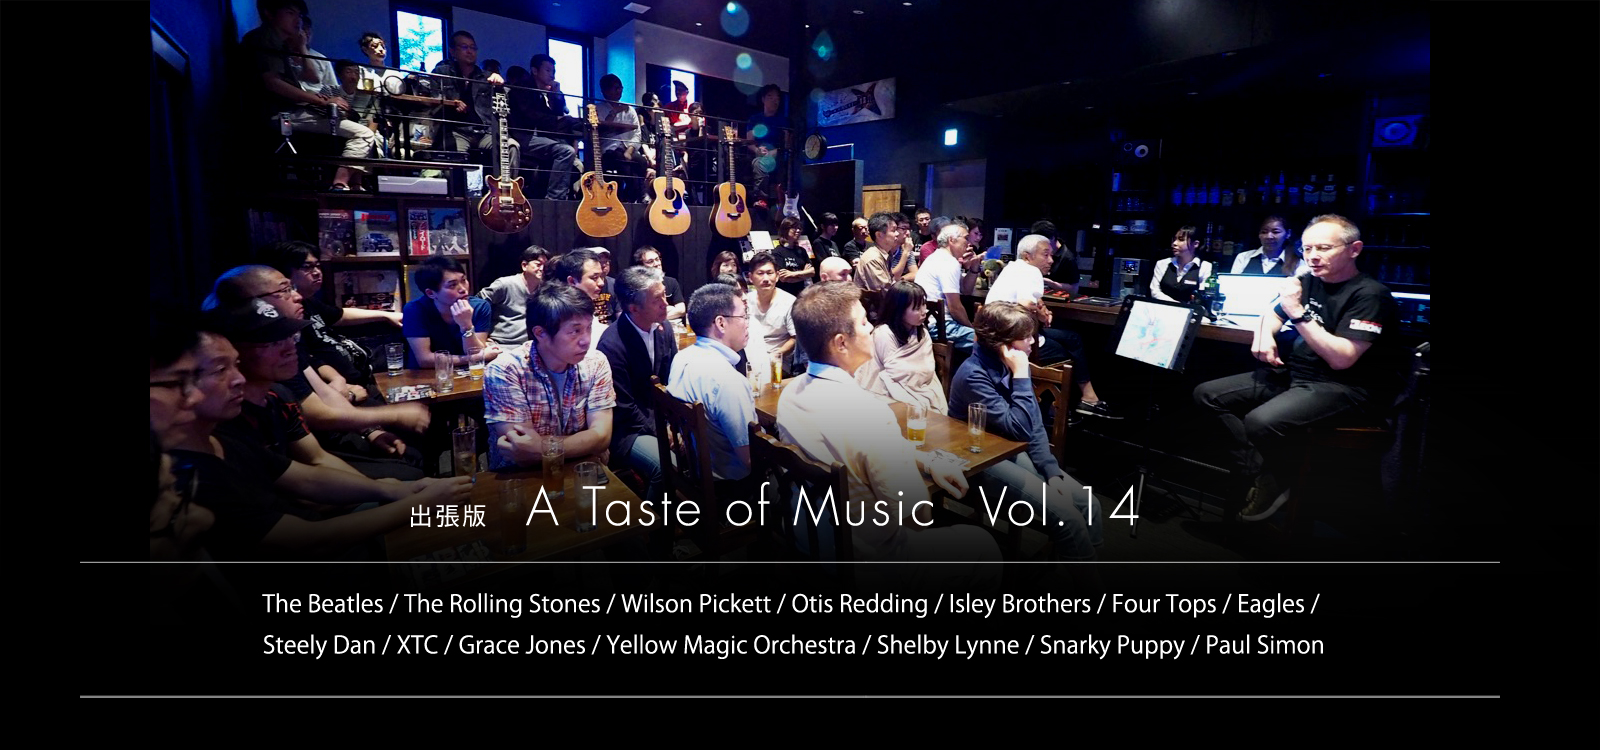 slider image A Taste of Music Vol.14